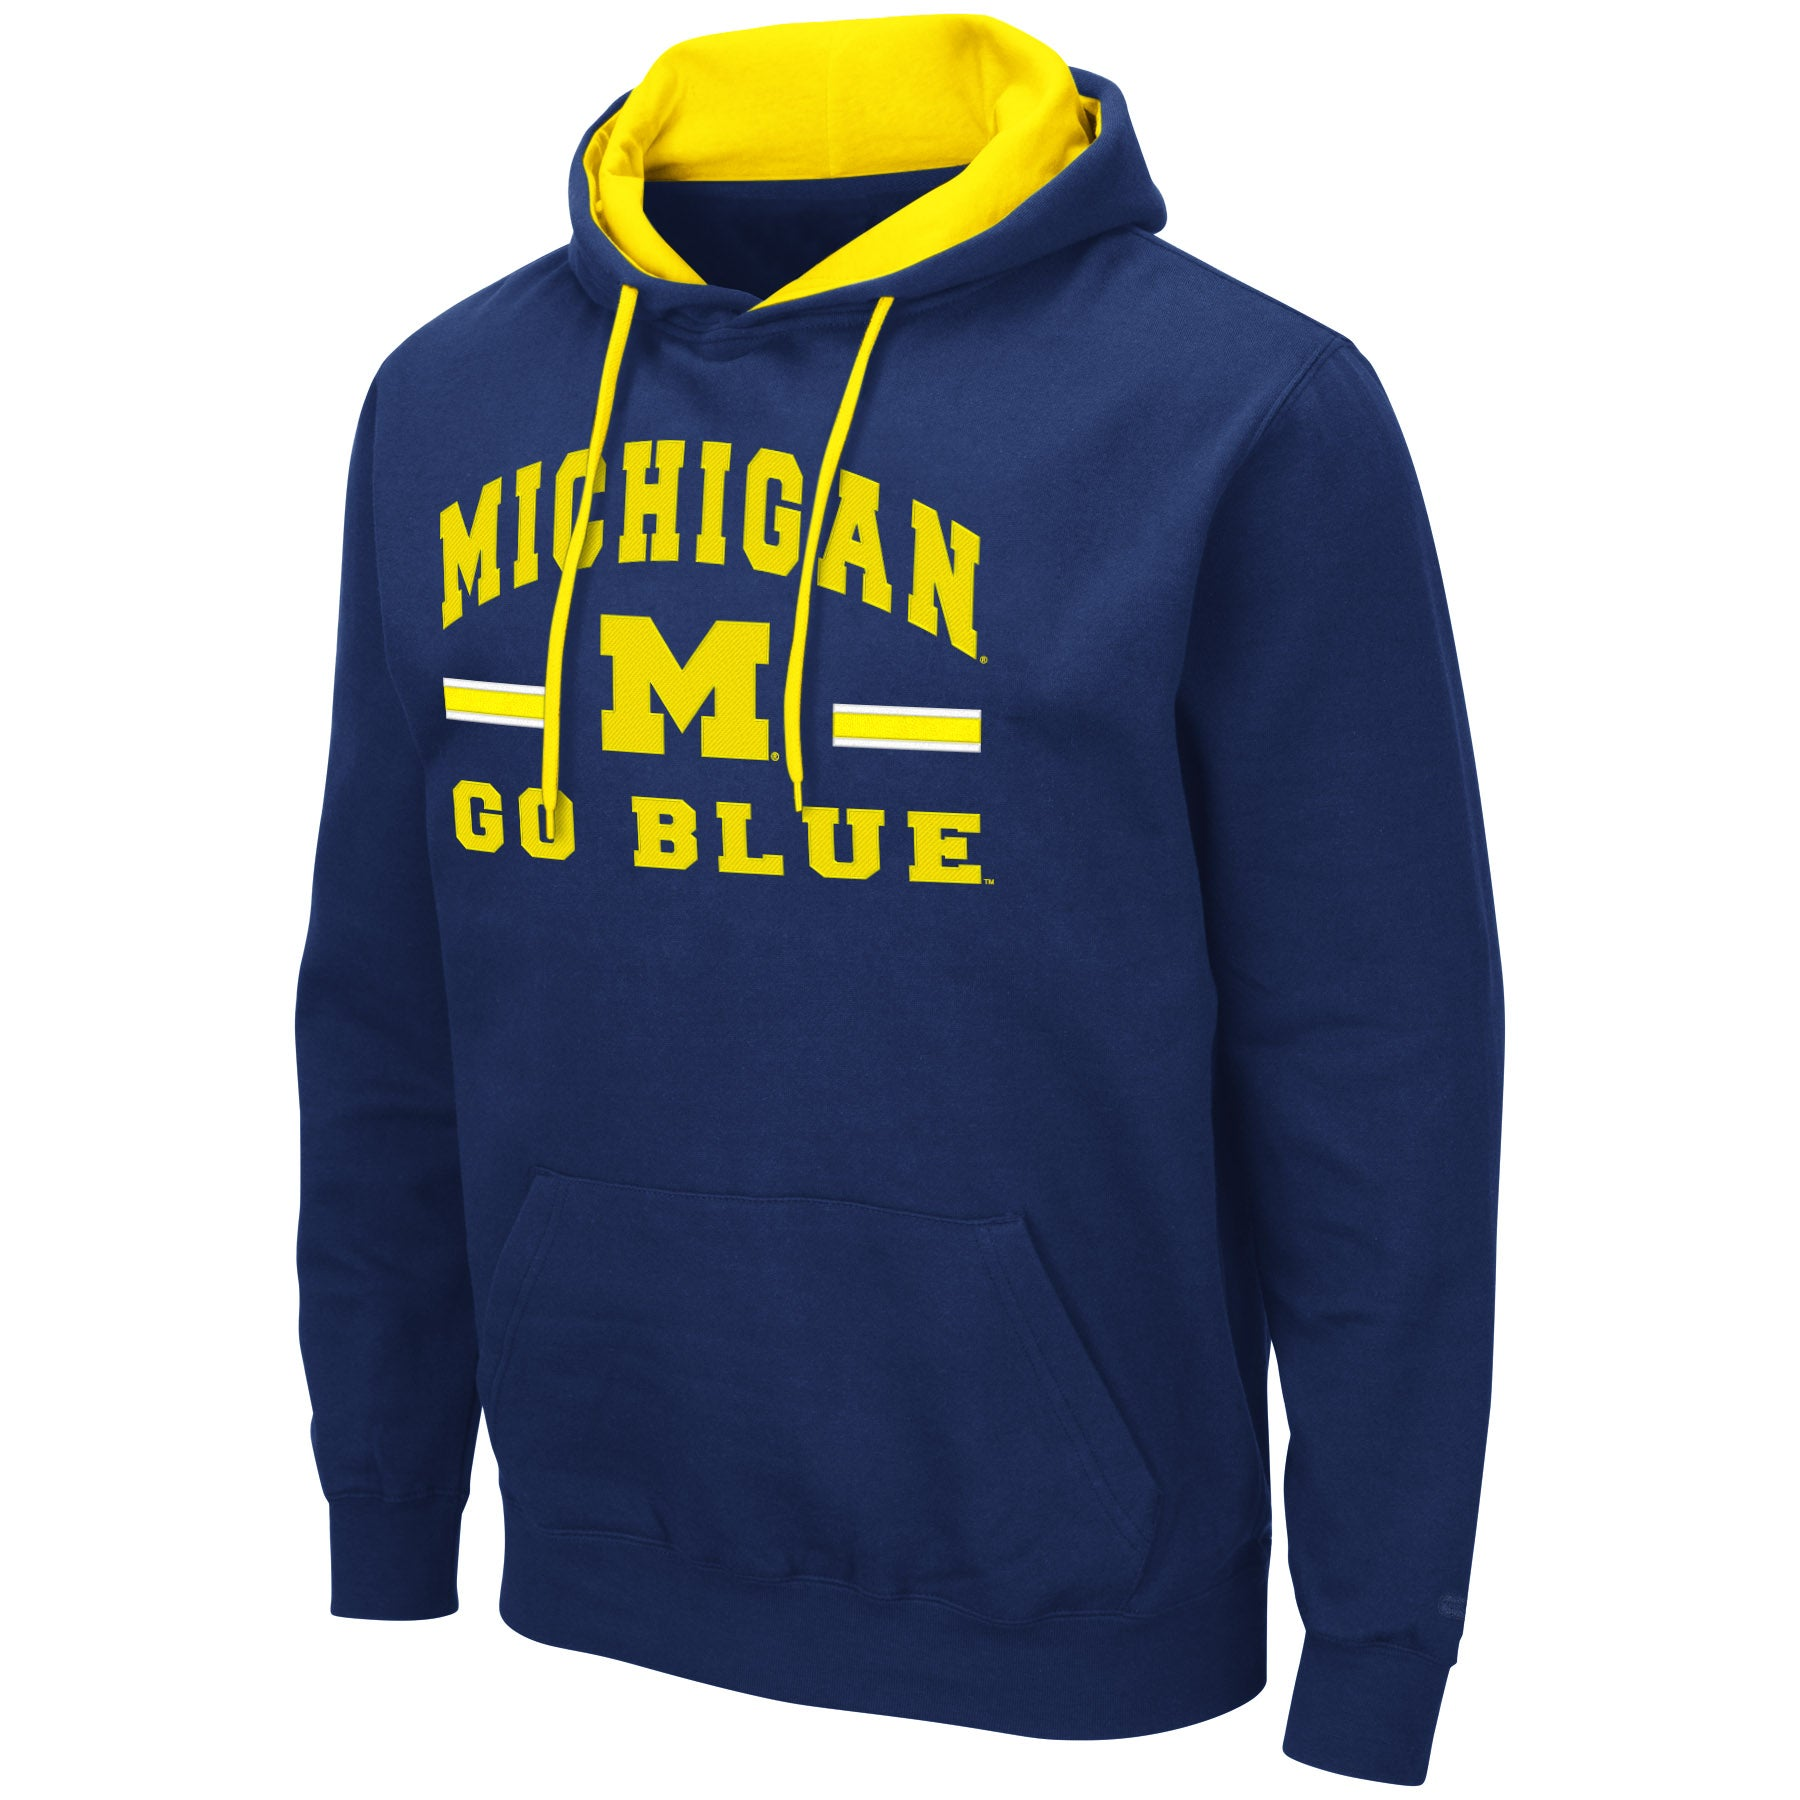 Michigan Wolverines Comic Book Hoodie